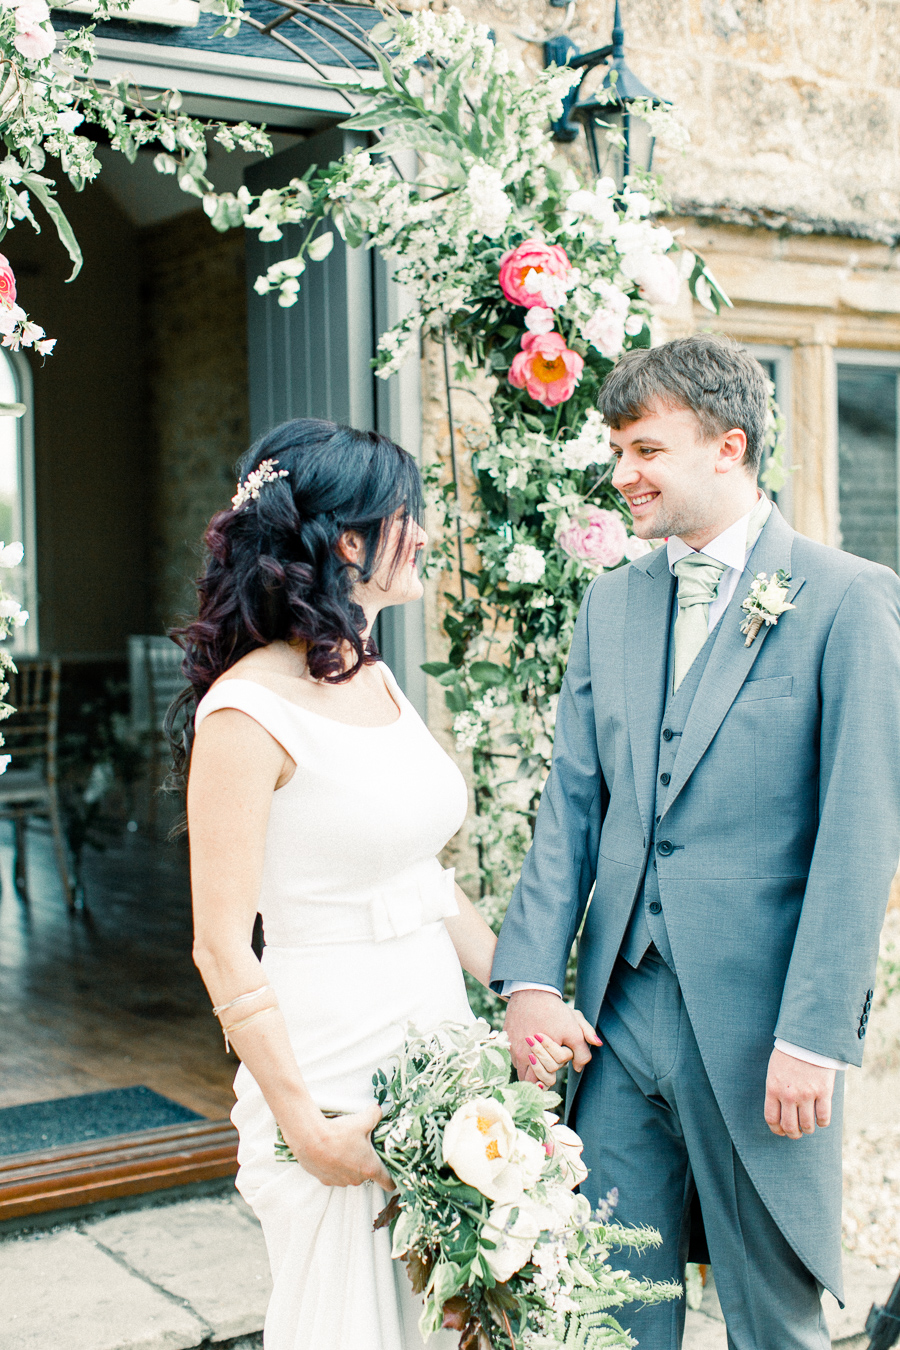 Jordans Courtyard rustic wedding styling ideas with images by Liz Baker Photography (21)